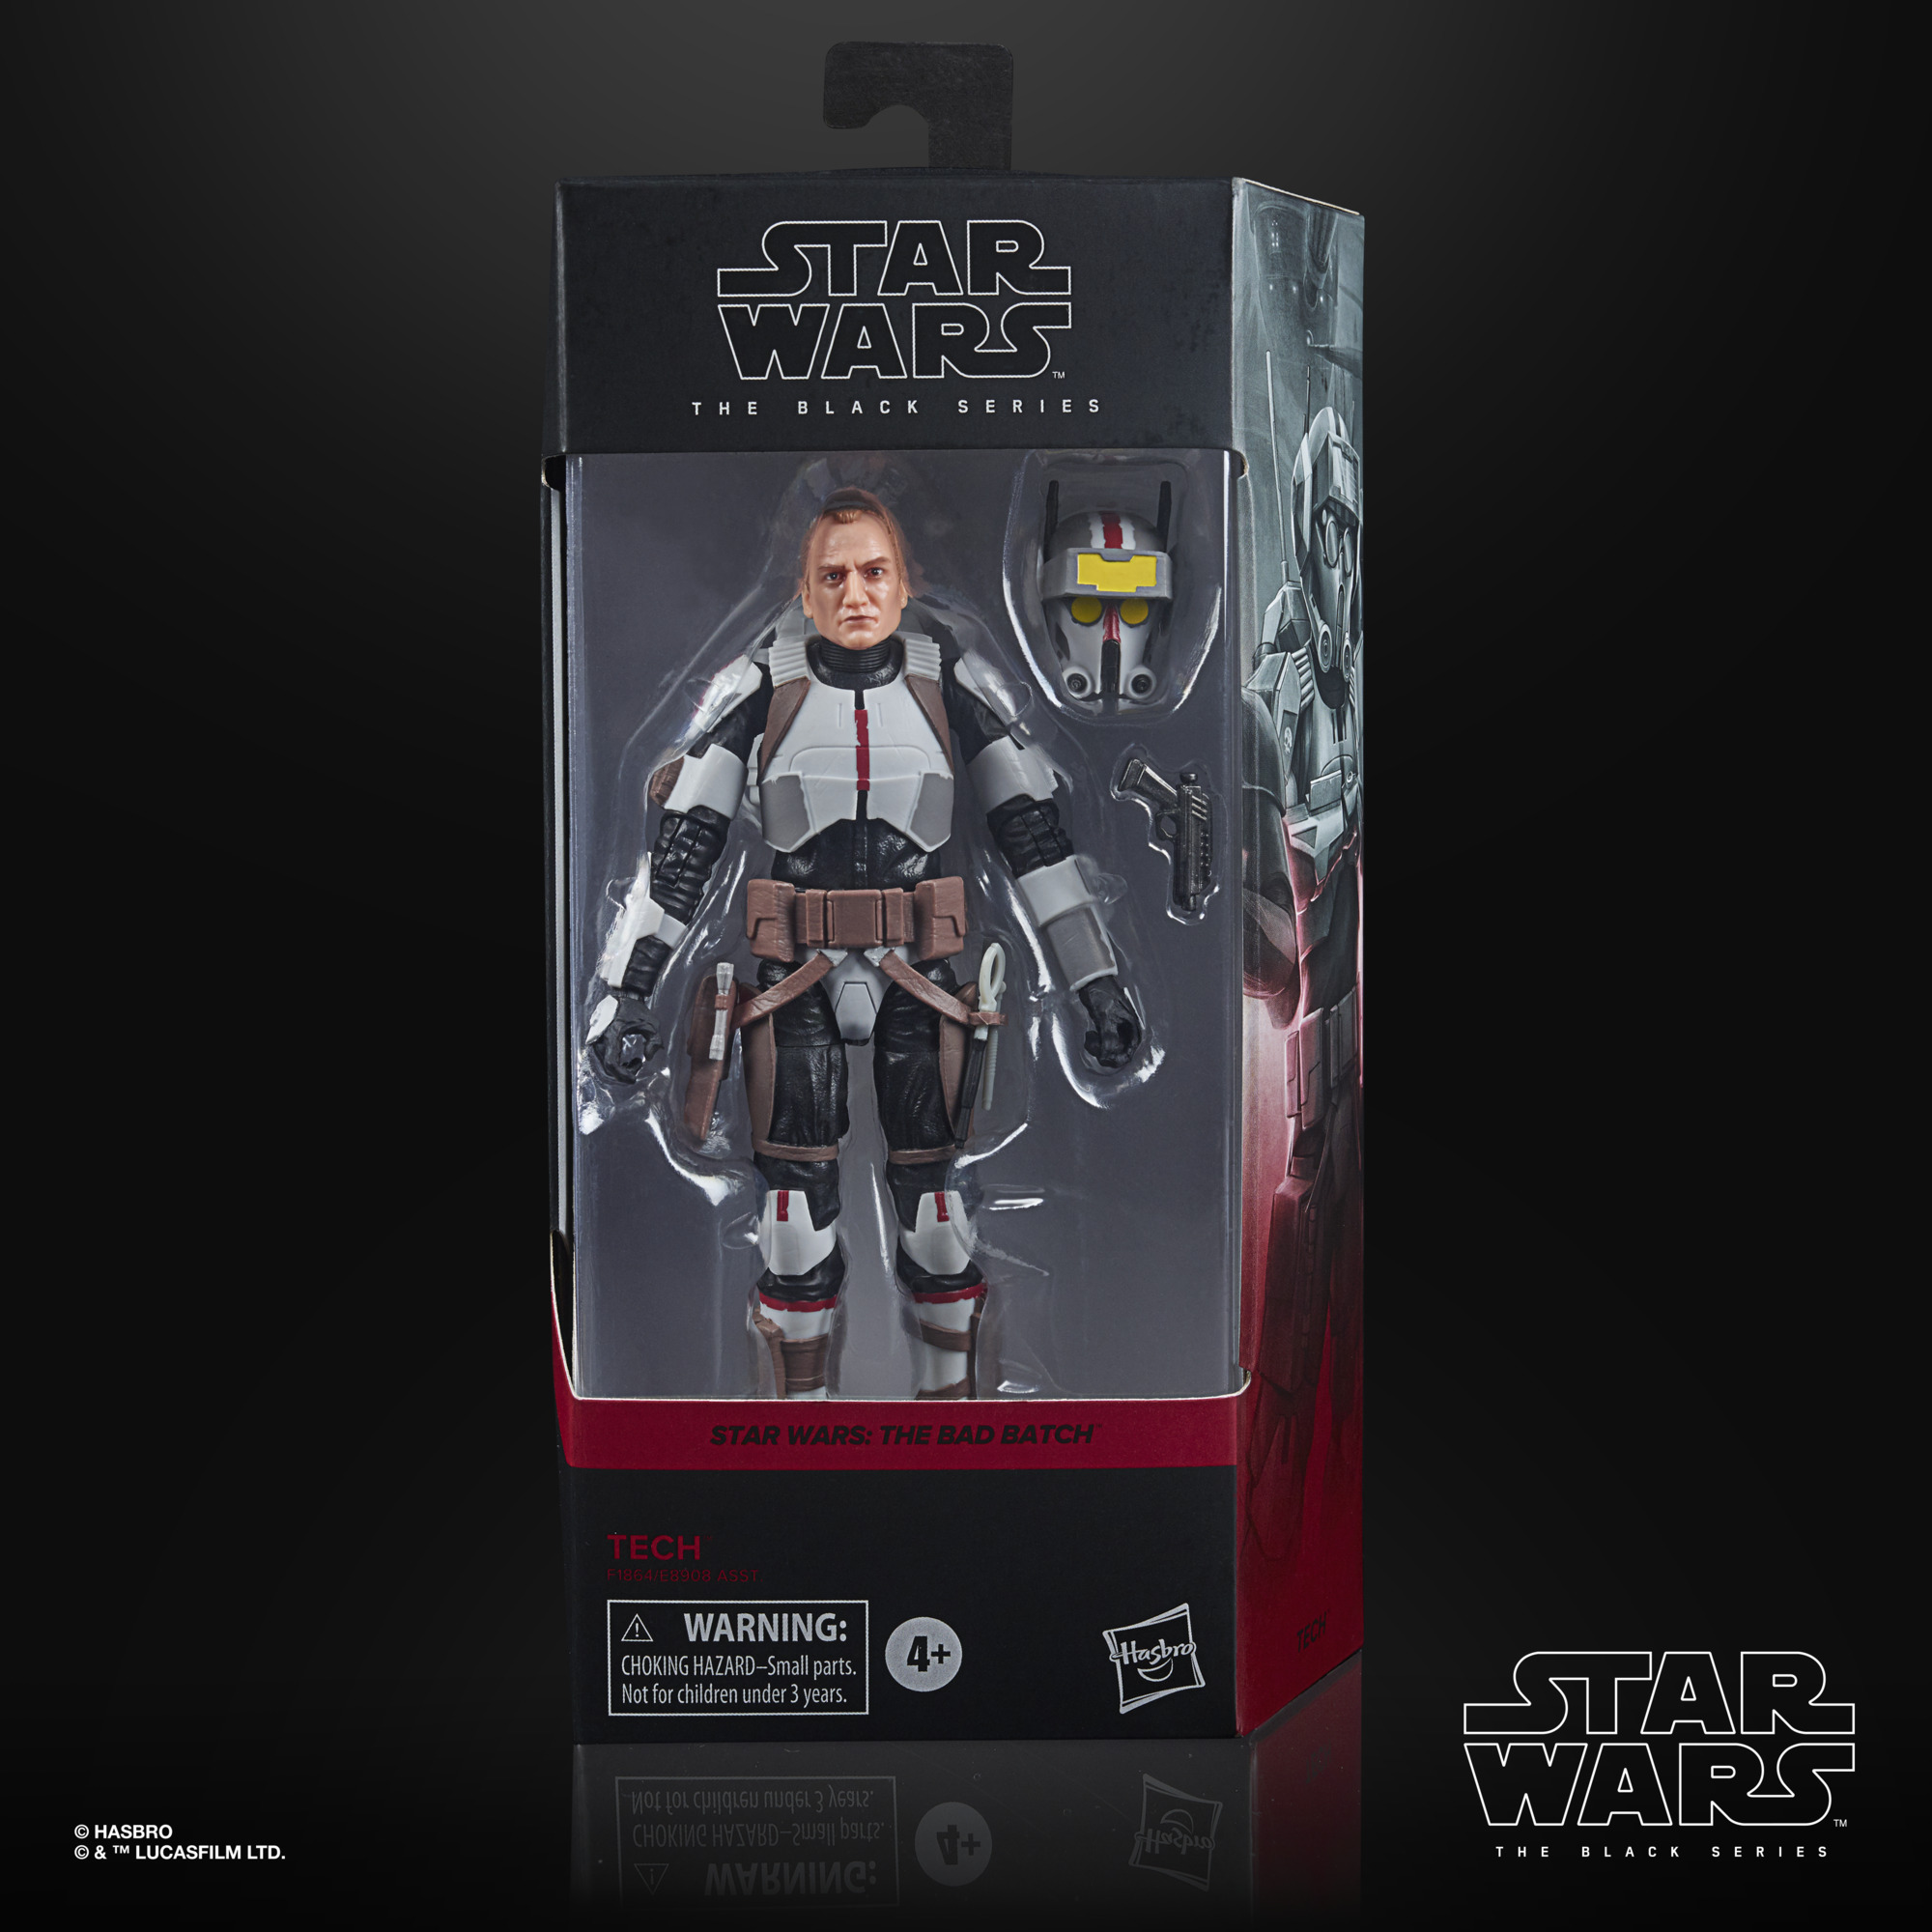 Star Wars The Black Series Tech 15cm  F1864 5010993828005